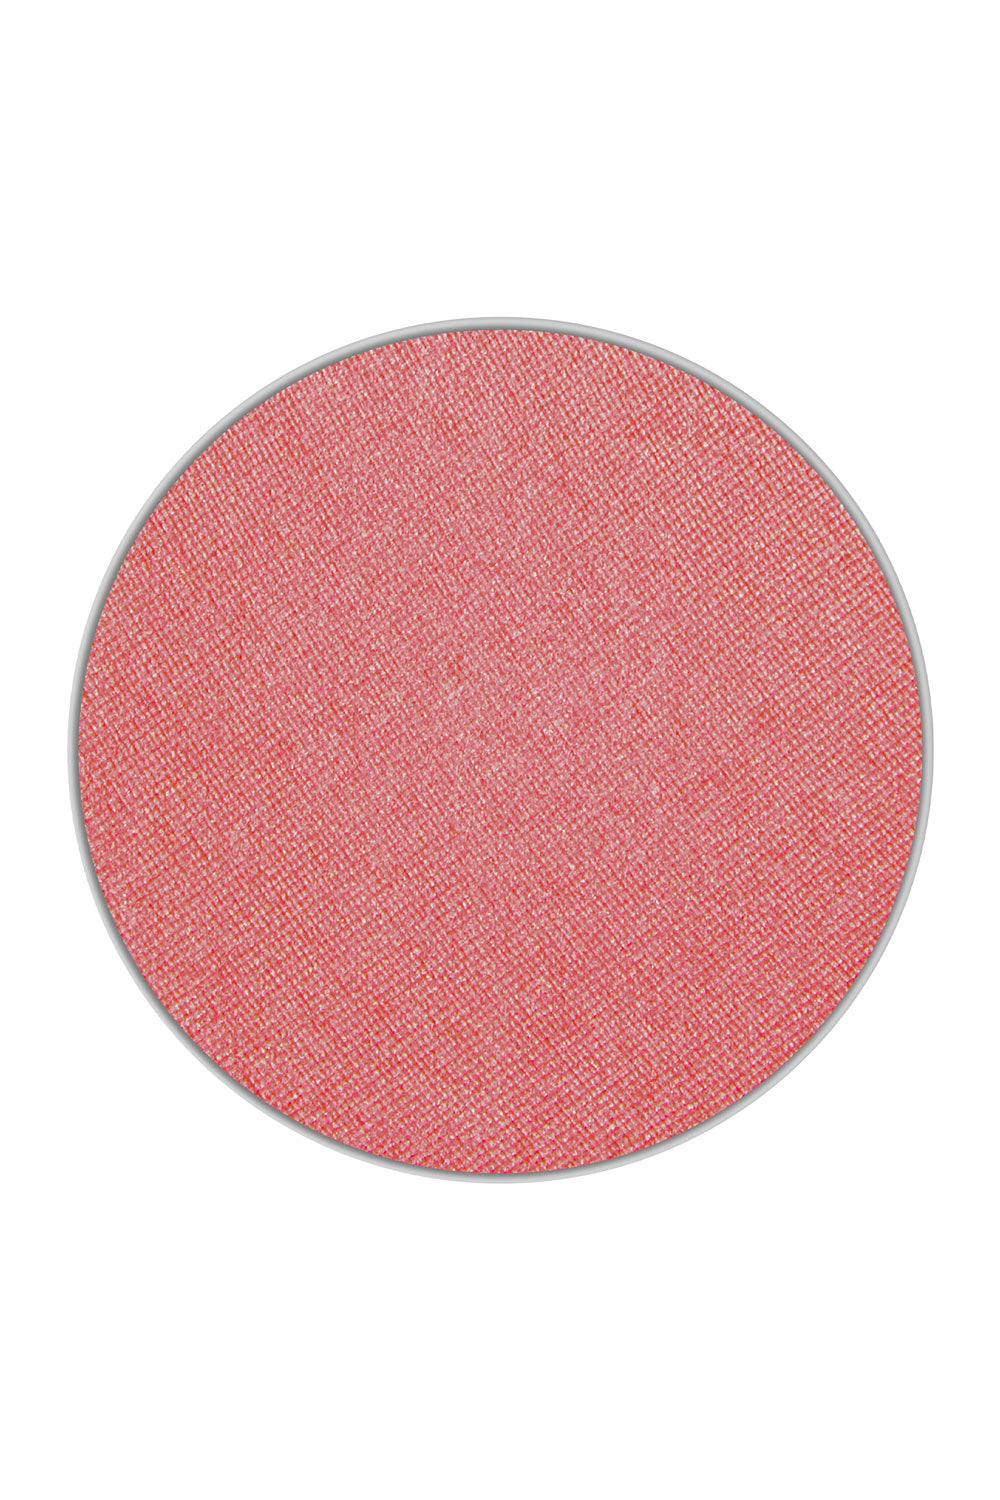 Cameo - Type 3 Blush Pan